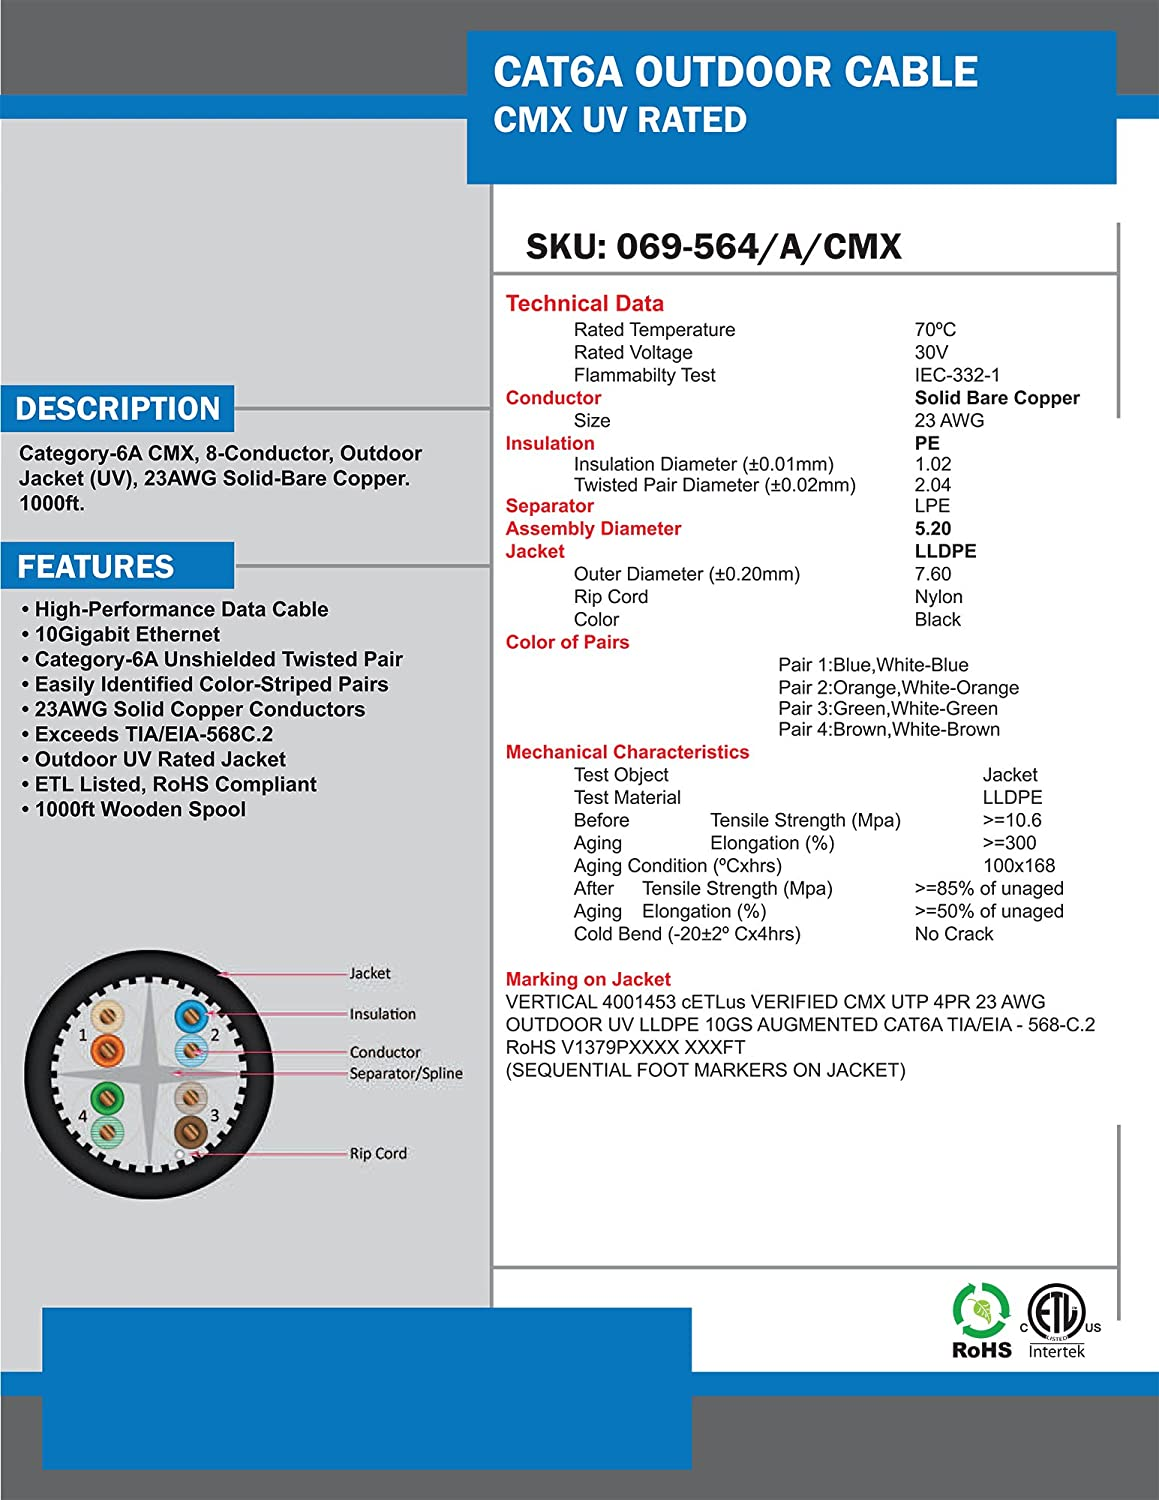 Famous Cat 6 568c Cable Wiring Diagram Gallery - Electrical System ...